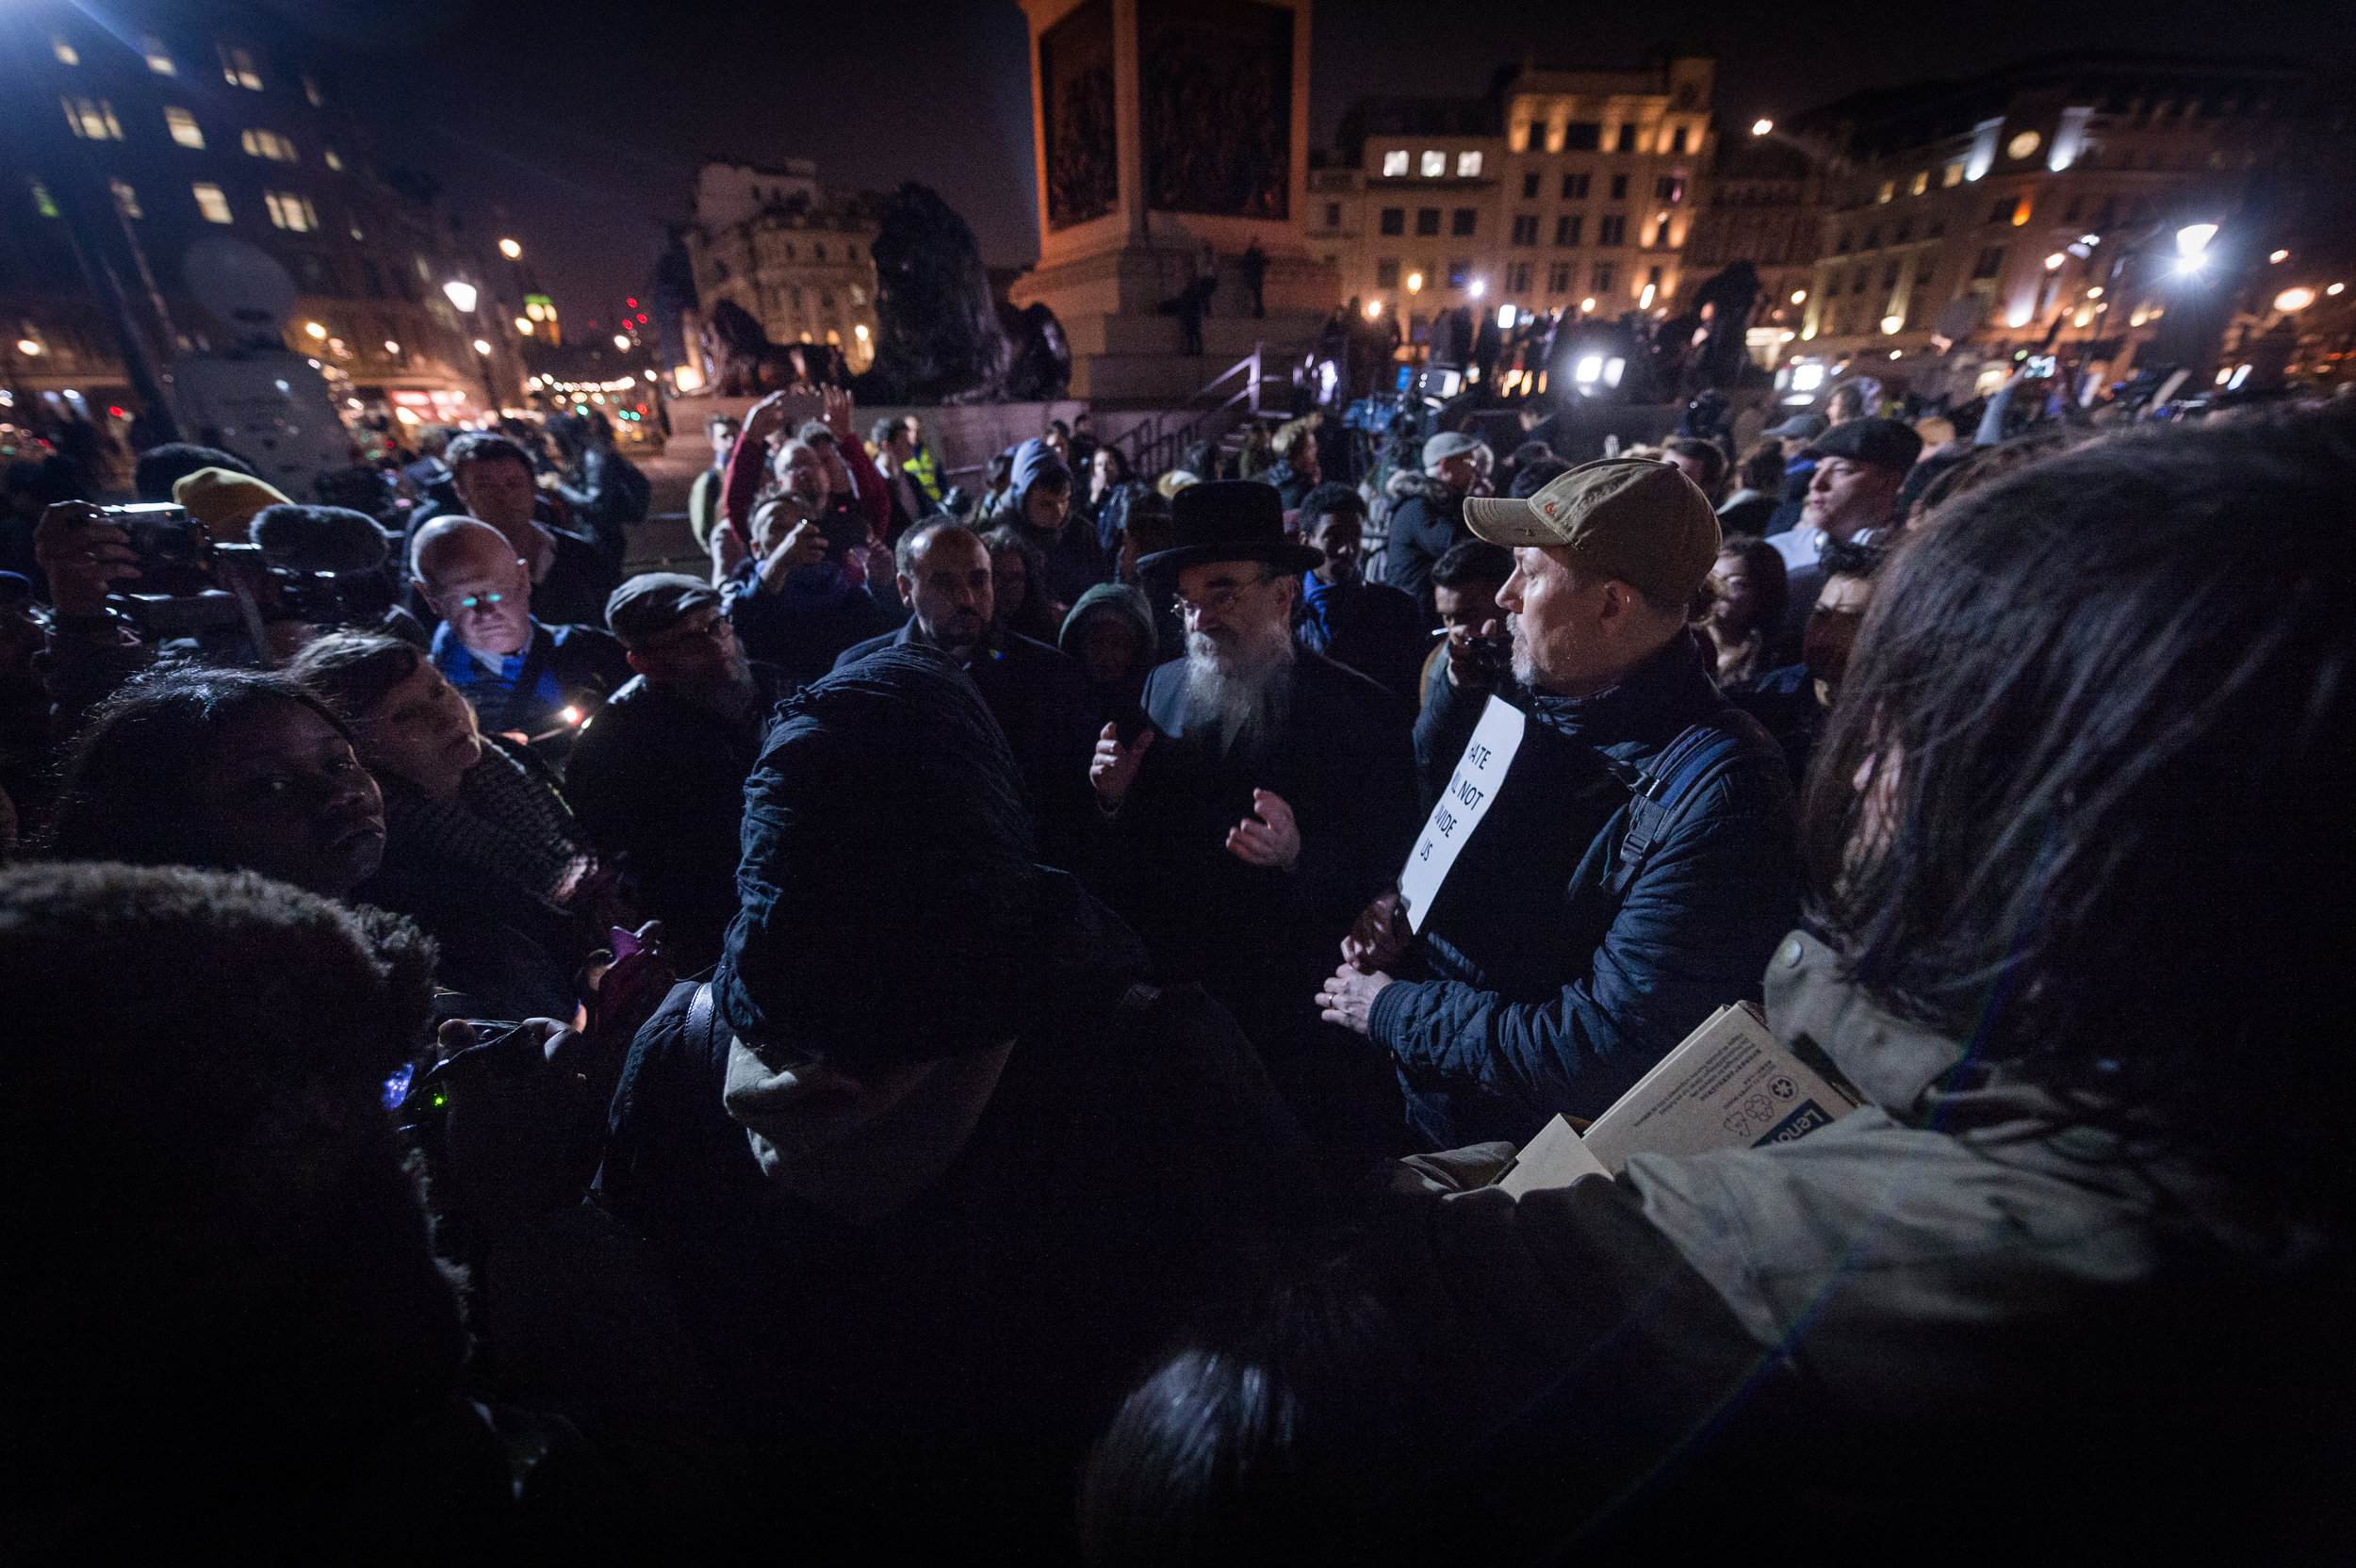 Crowds gather around a Rabbi and a Muslim woman as they engage in a public debate about how representatives of each religion can move forward from this tragedy.